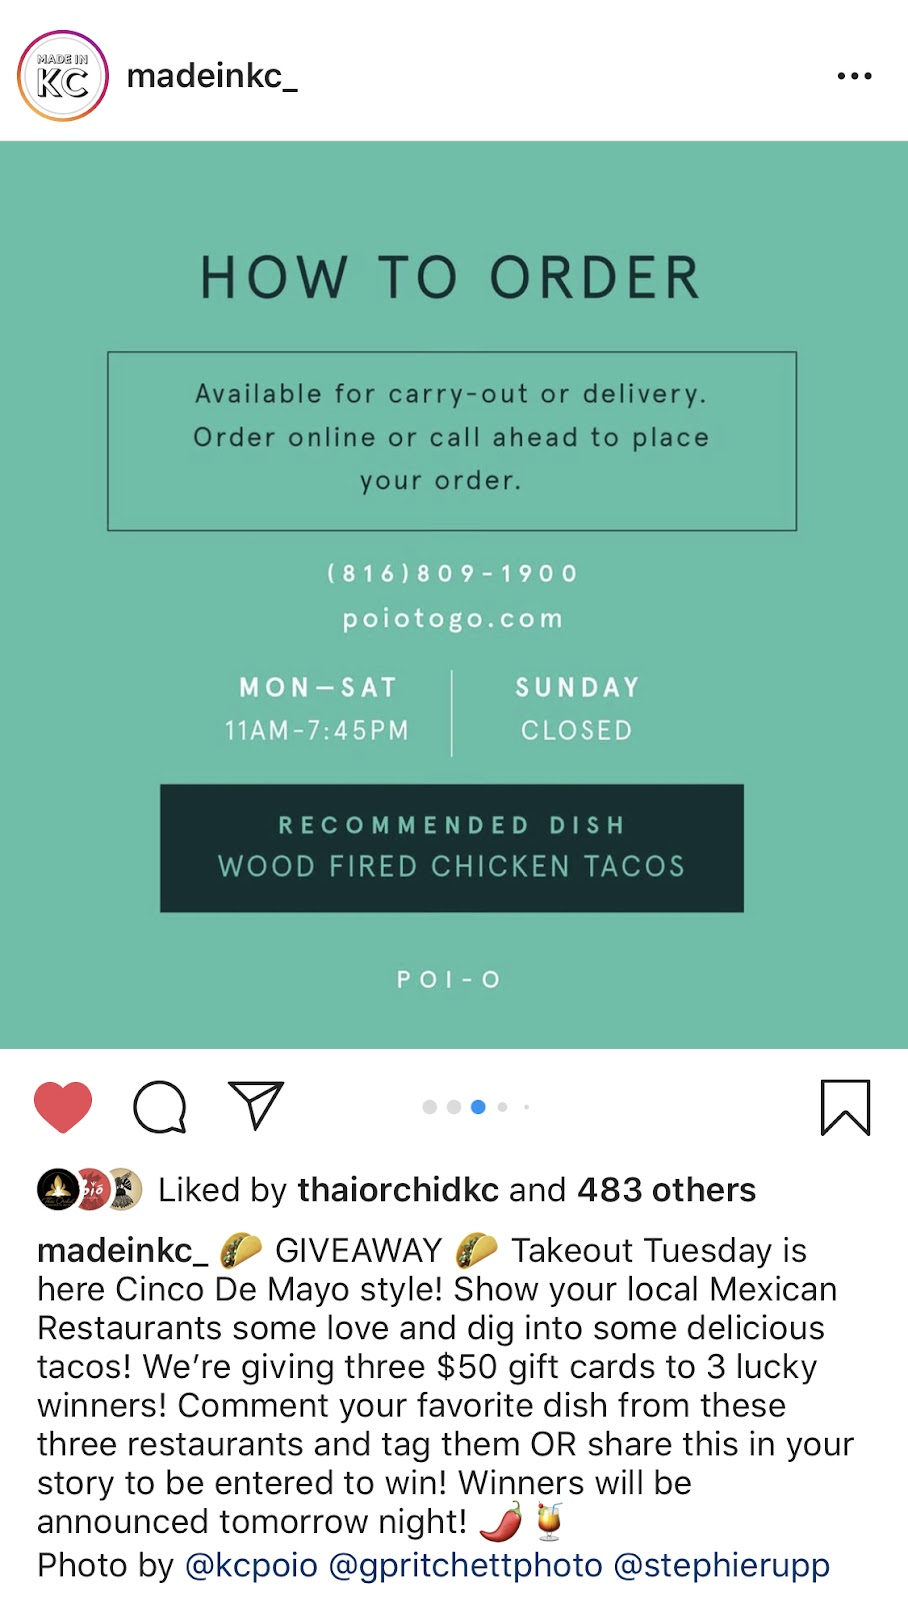 Instagram screenshot from a madeinkc_ post with a graphic explaining how to place a takeout order from kcpoio